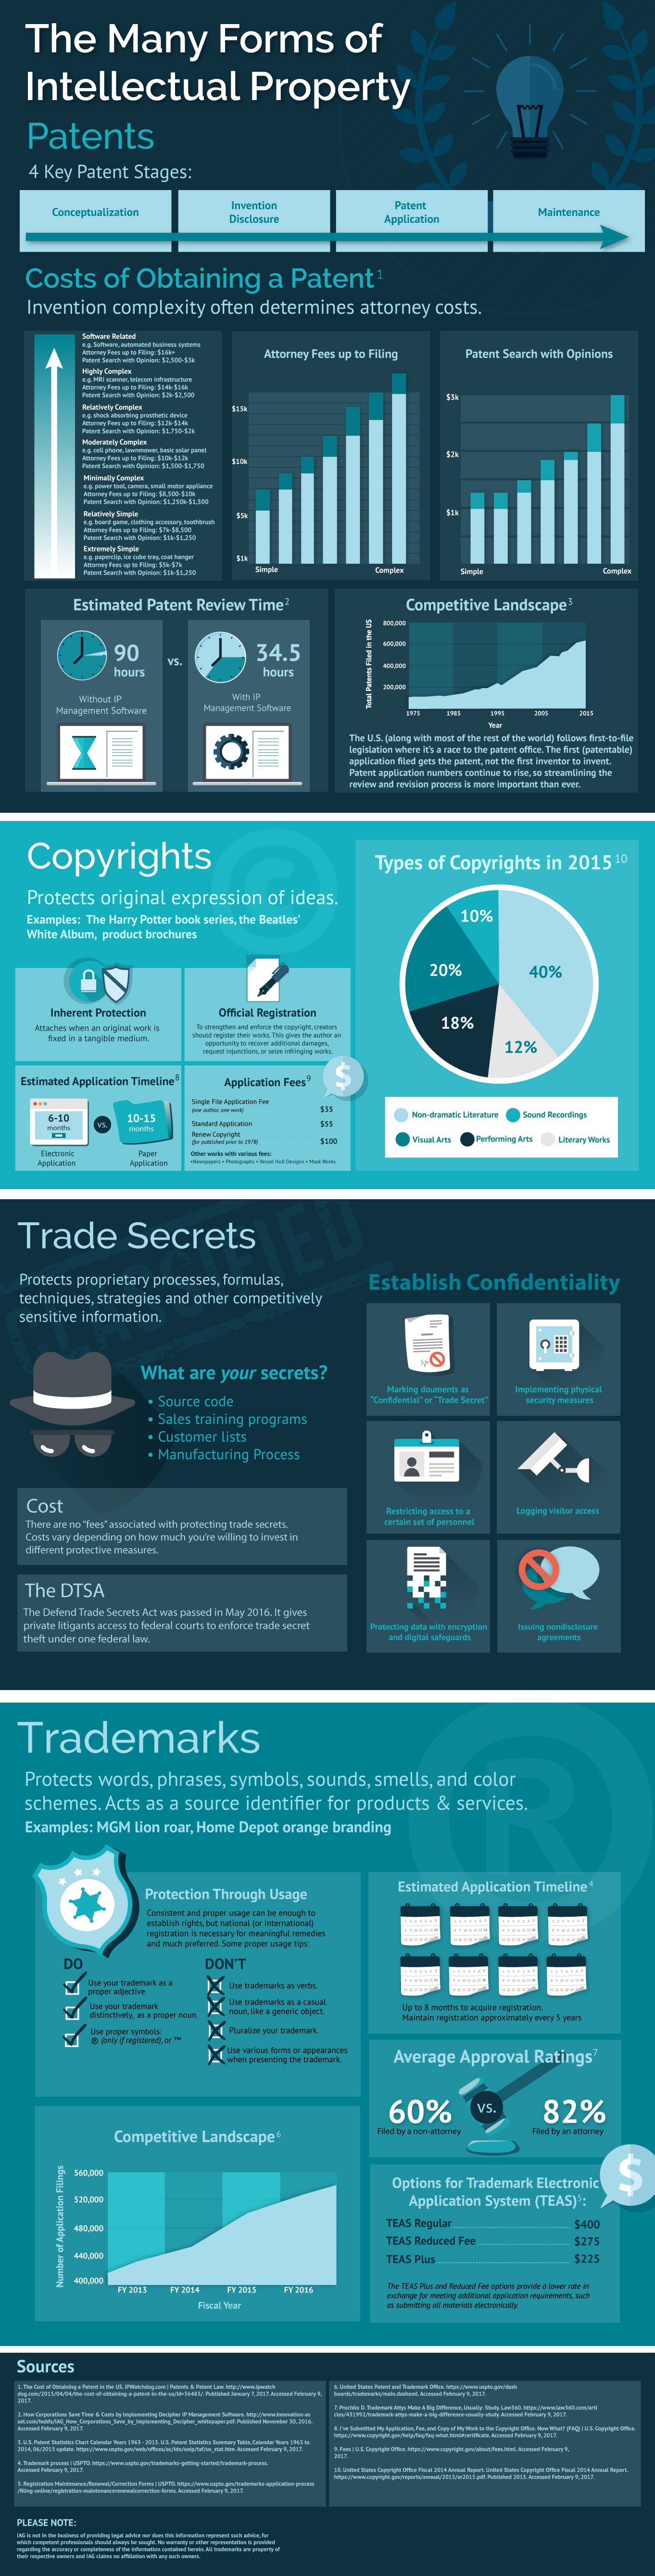 IAG_Many_Forms_of_Intellectual_Property_infographic